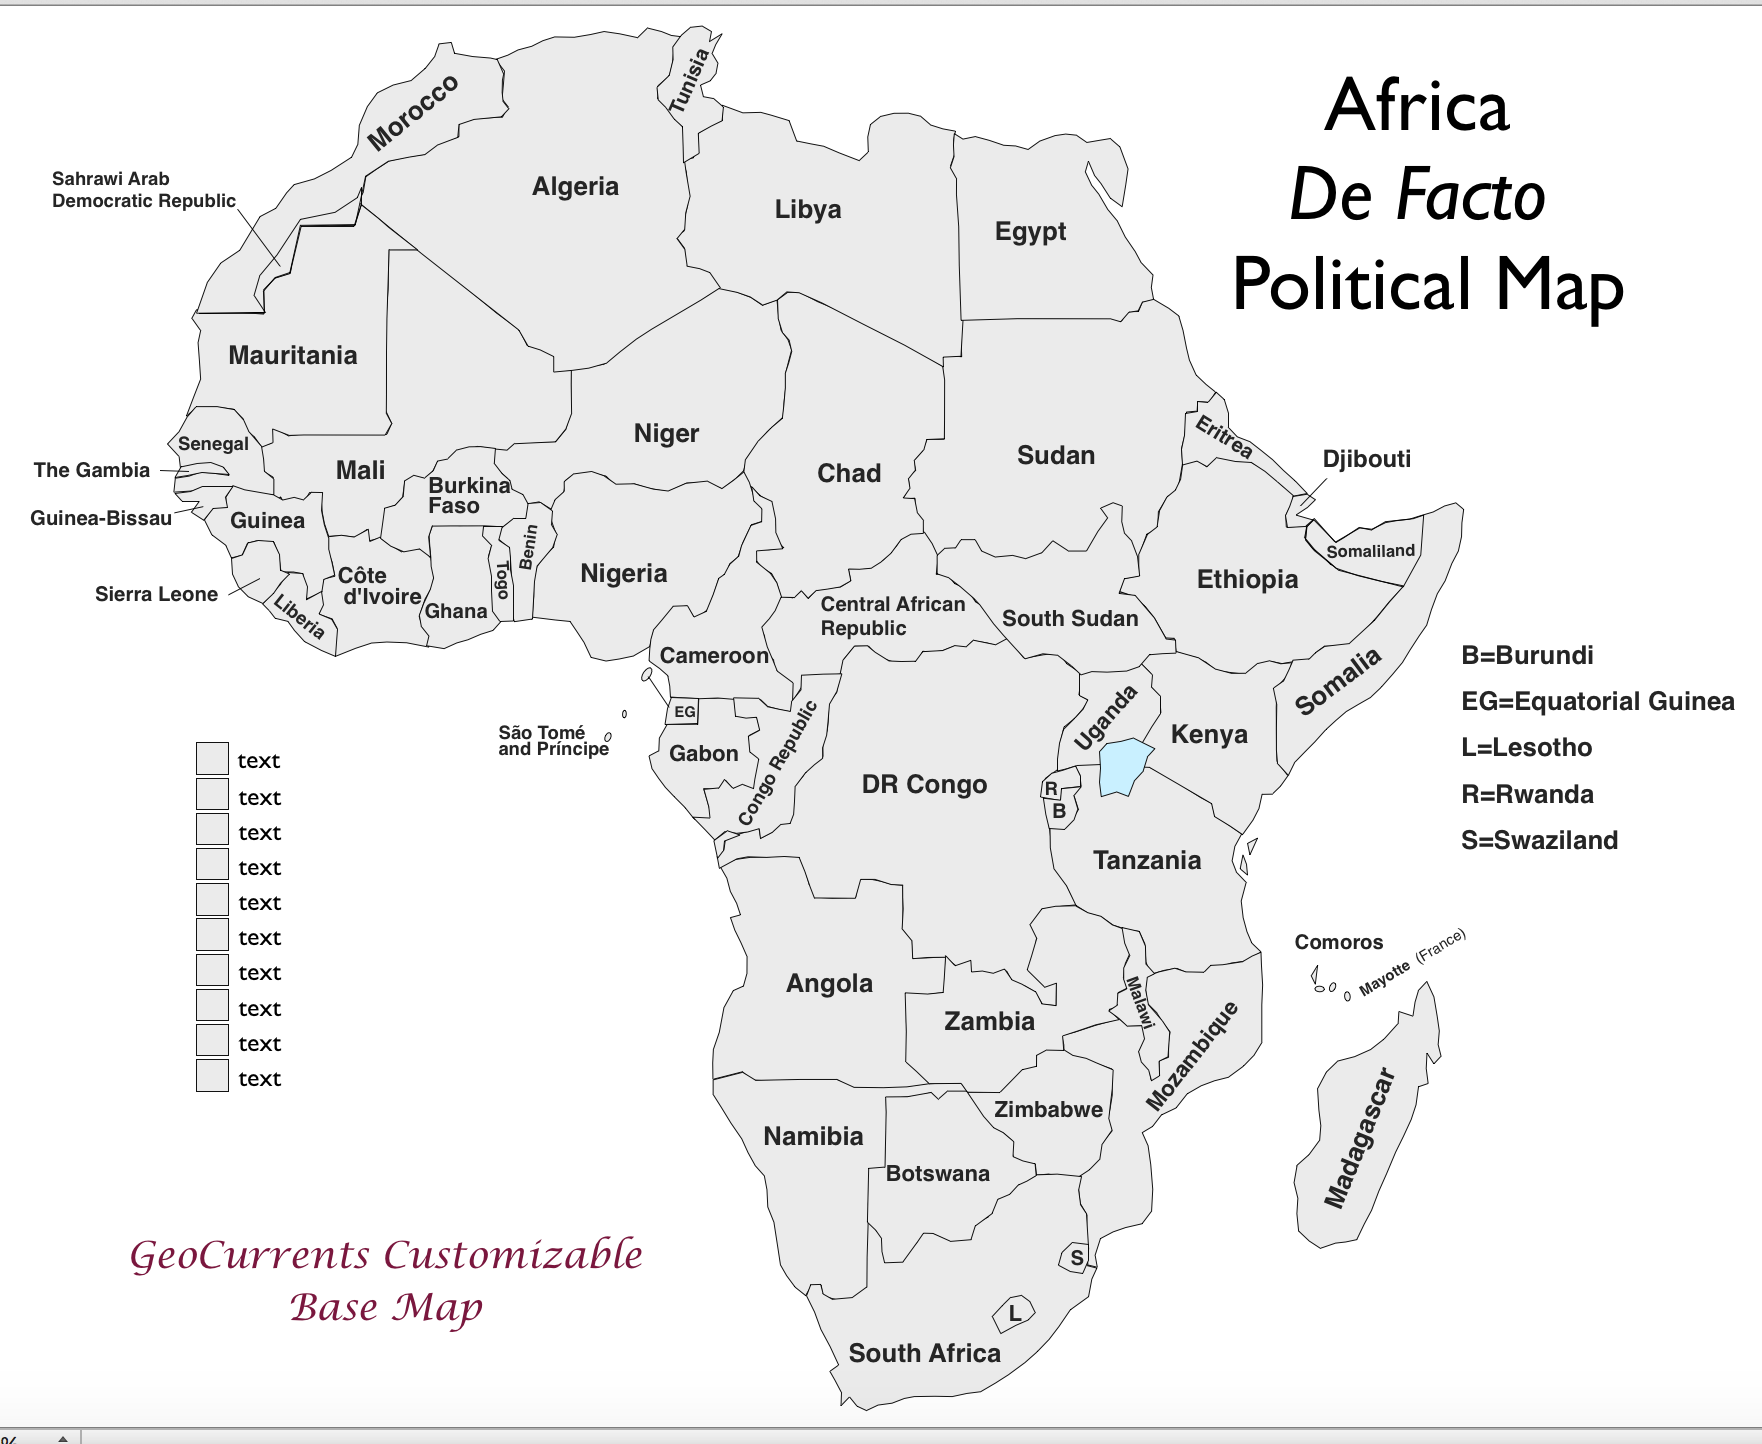 Free Customizable Maps Of Africa For Download GeoCurrents - Map africa